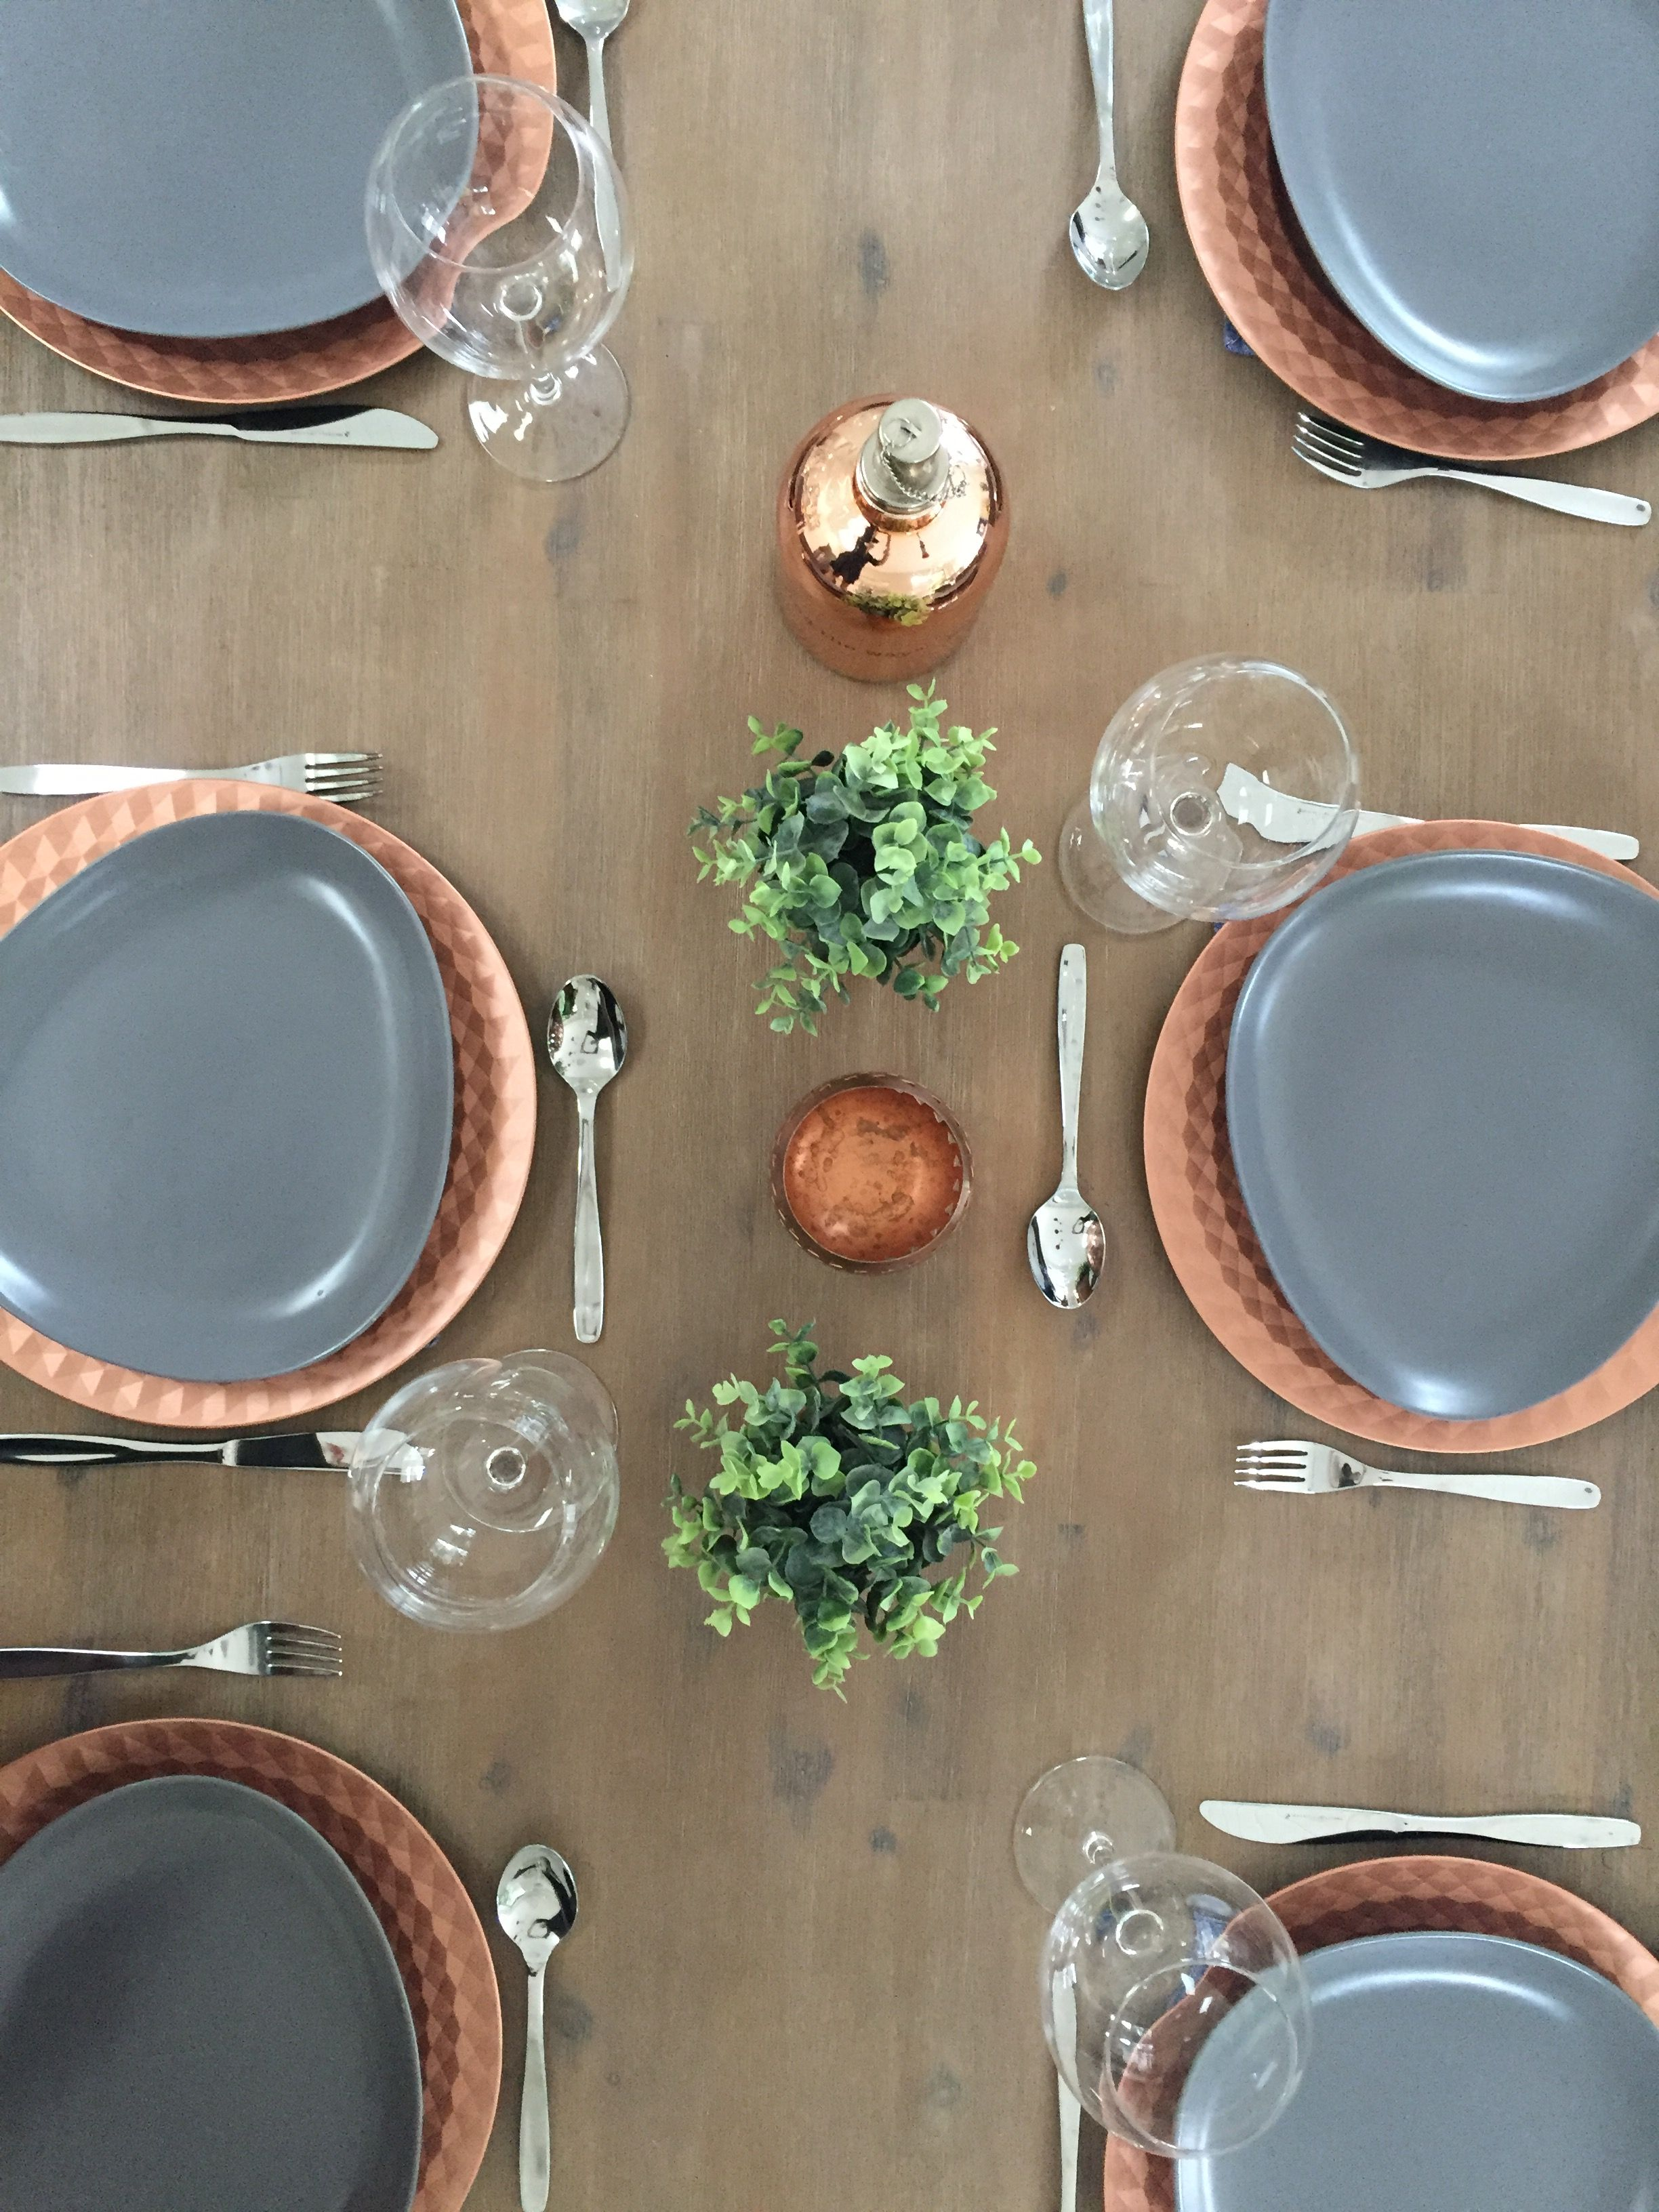 Rustic Table Setting With Rose Gold And Grey Theme Outdoor Table Decor Ideas In 2019 Rose Gold Kitchen Rose Gold Decor Rose Gold Table